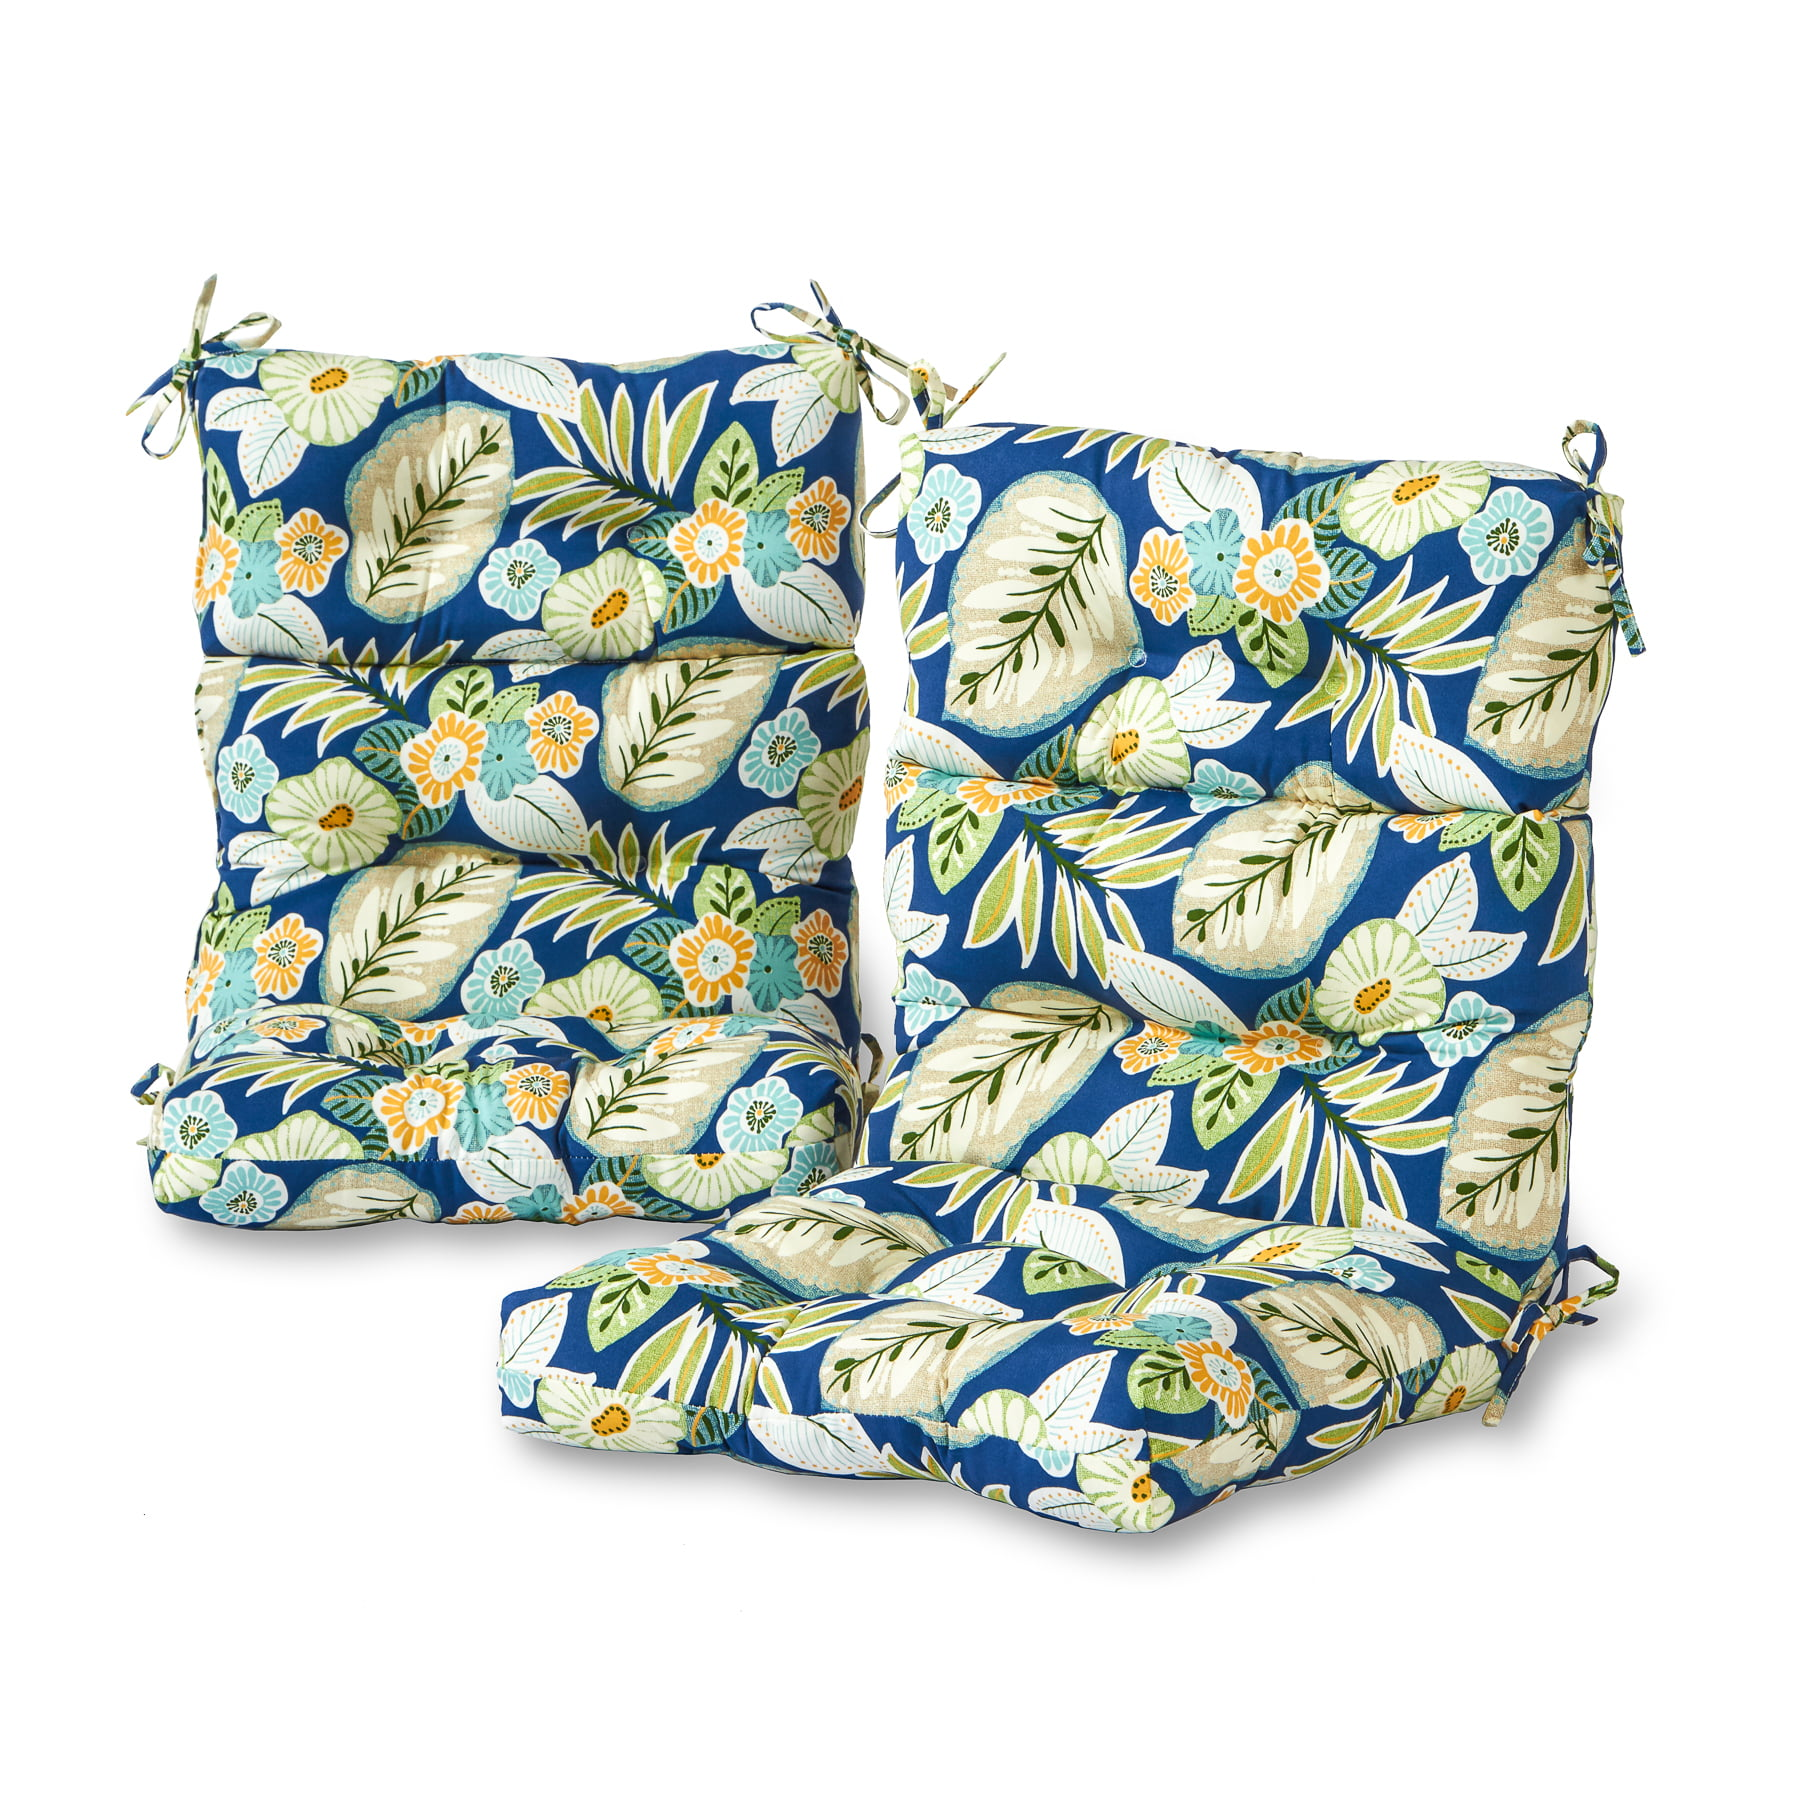 Greendale Home Fashions Marlow Outdoor High Back Chair Cushion, Set of 2 by Greendale Home Fashions